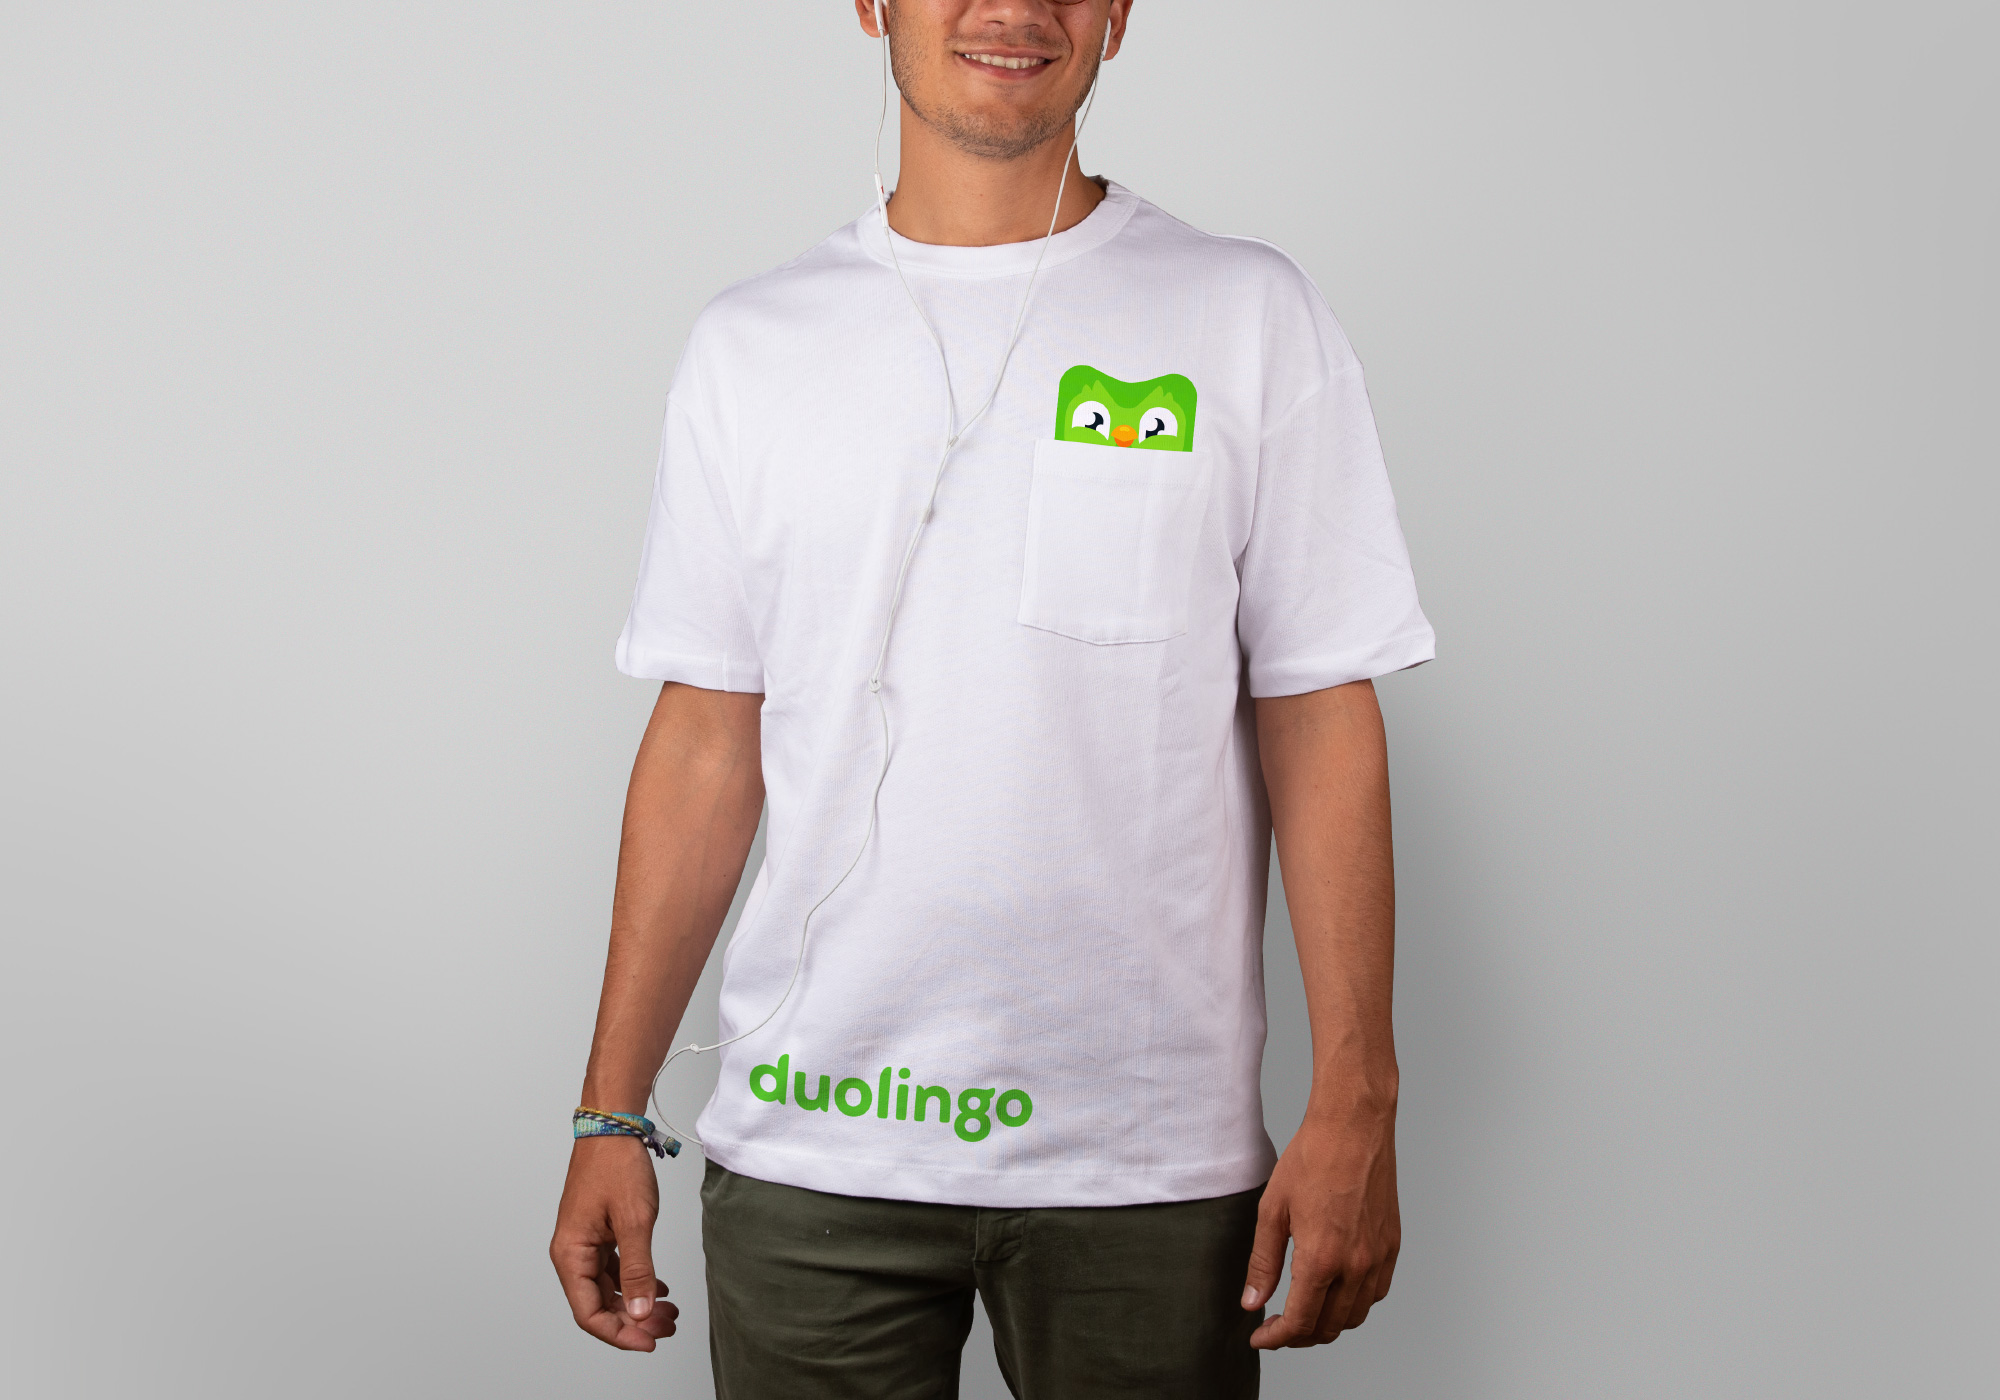 New Wordmark and Identity for Duolingo by Johnson Banks